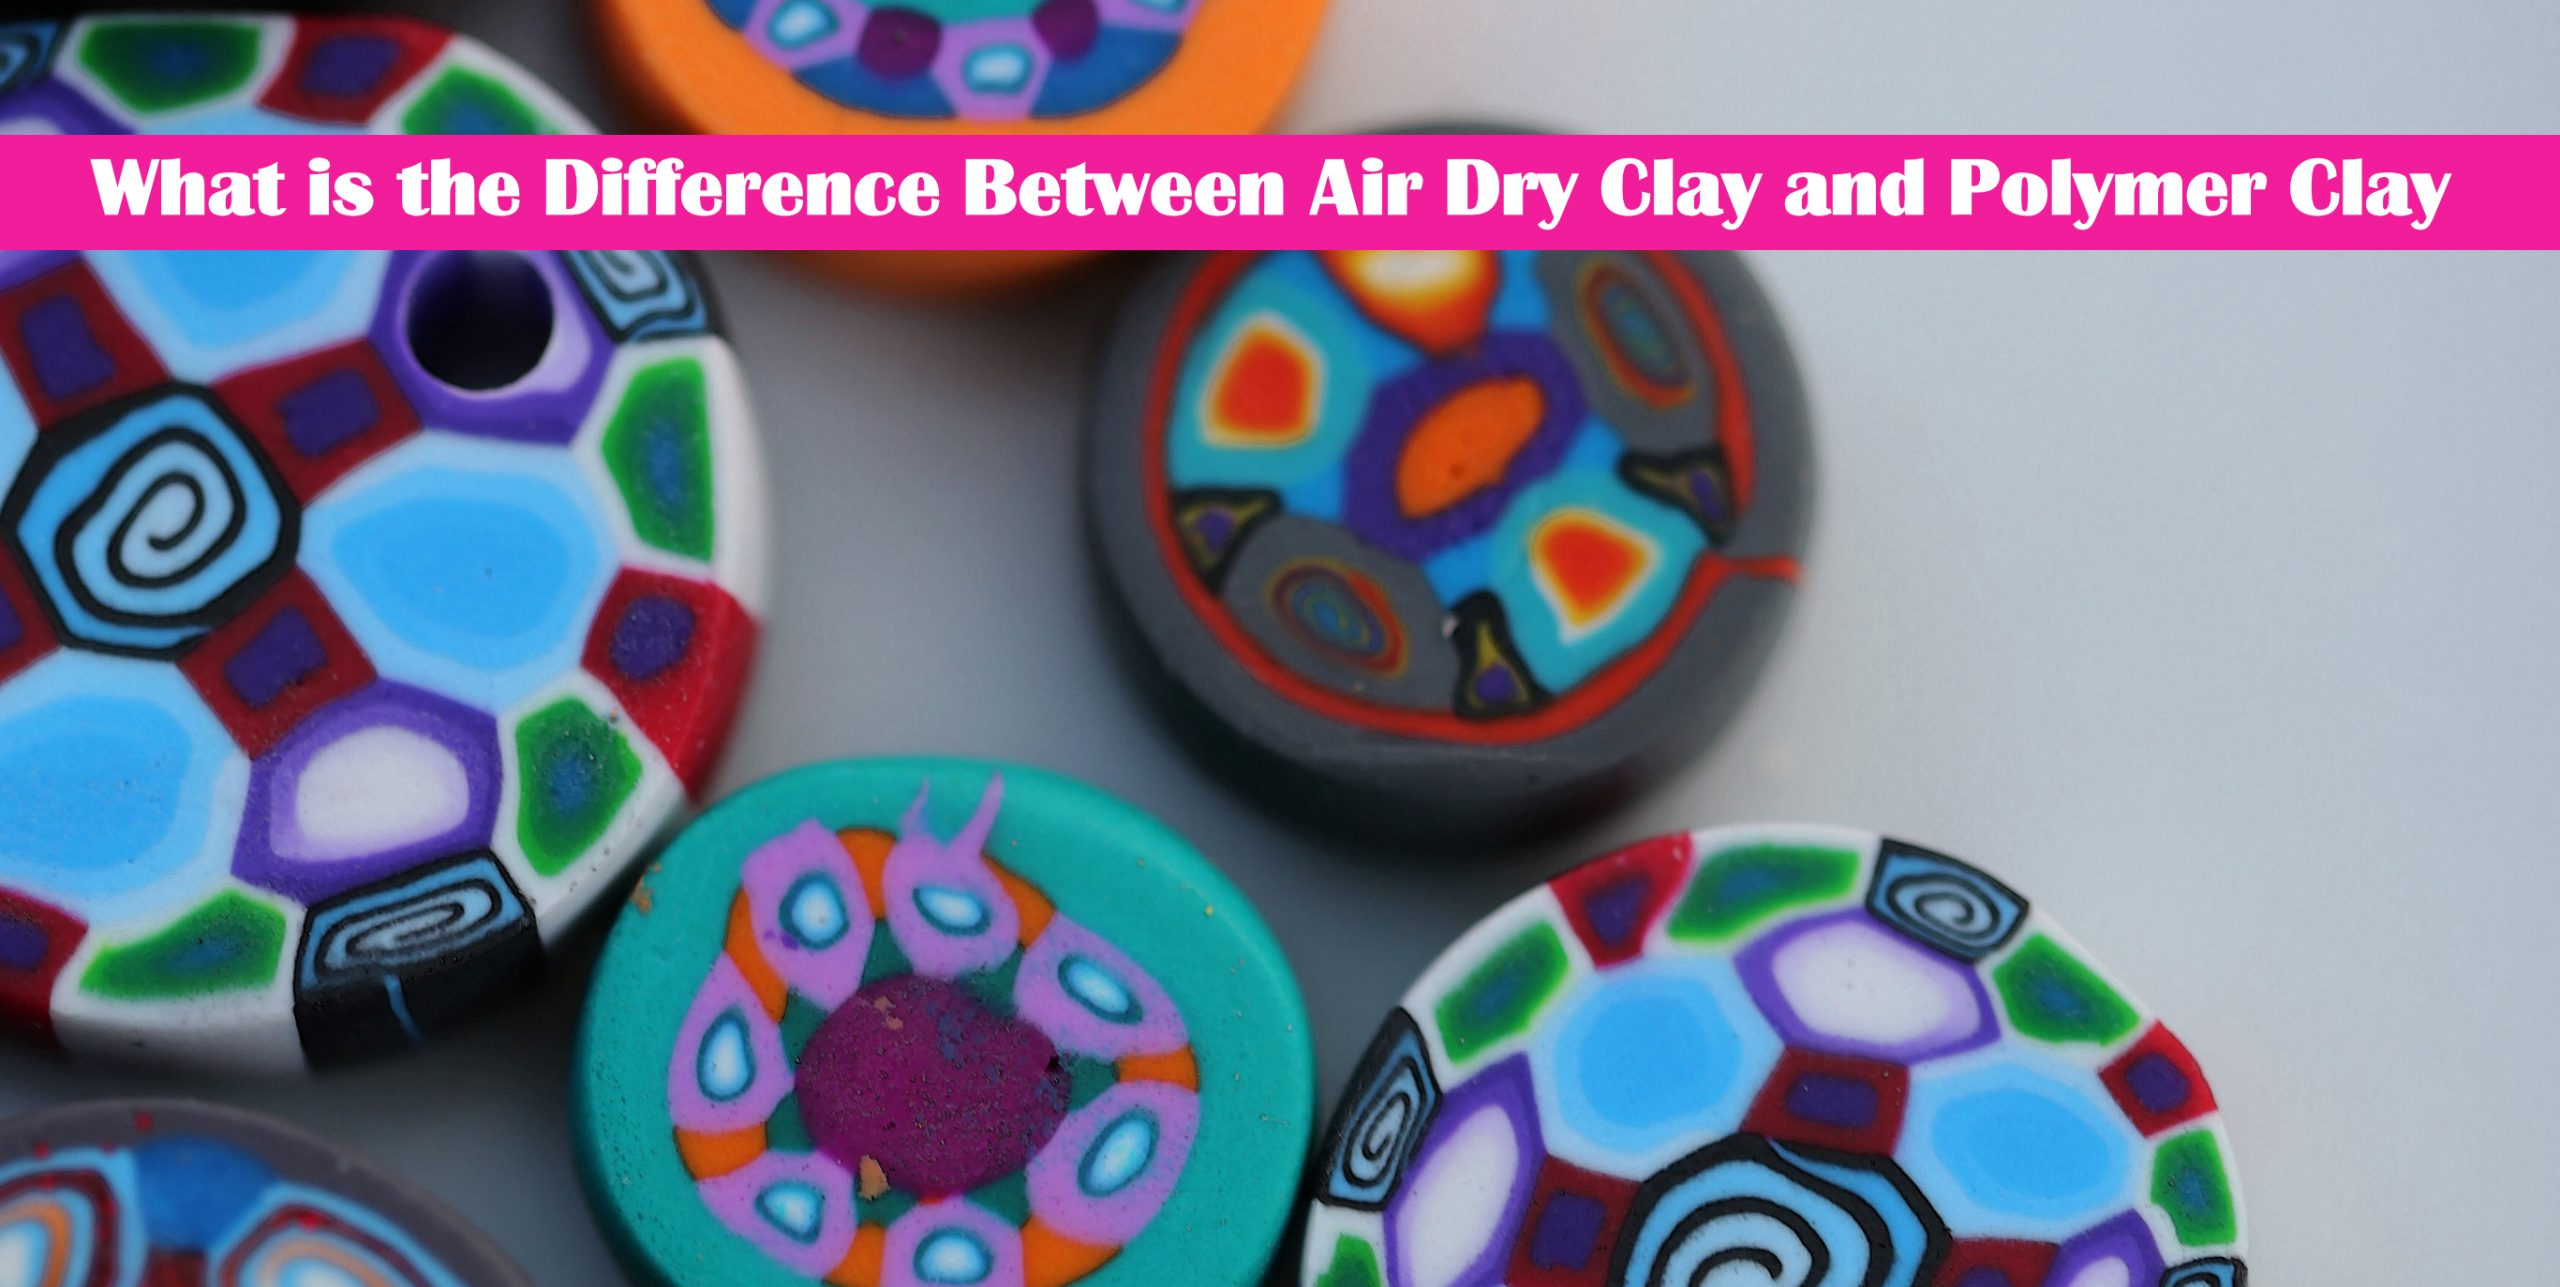 What is the Difference Between Air Dry Clay and Polymer Clay